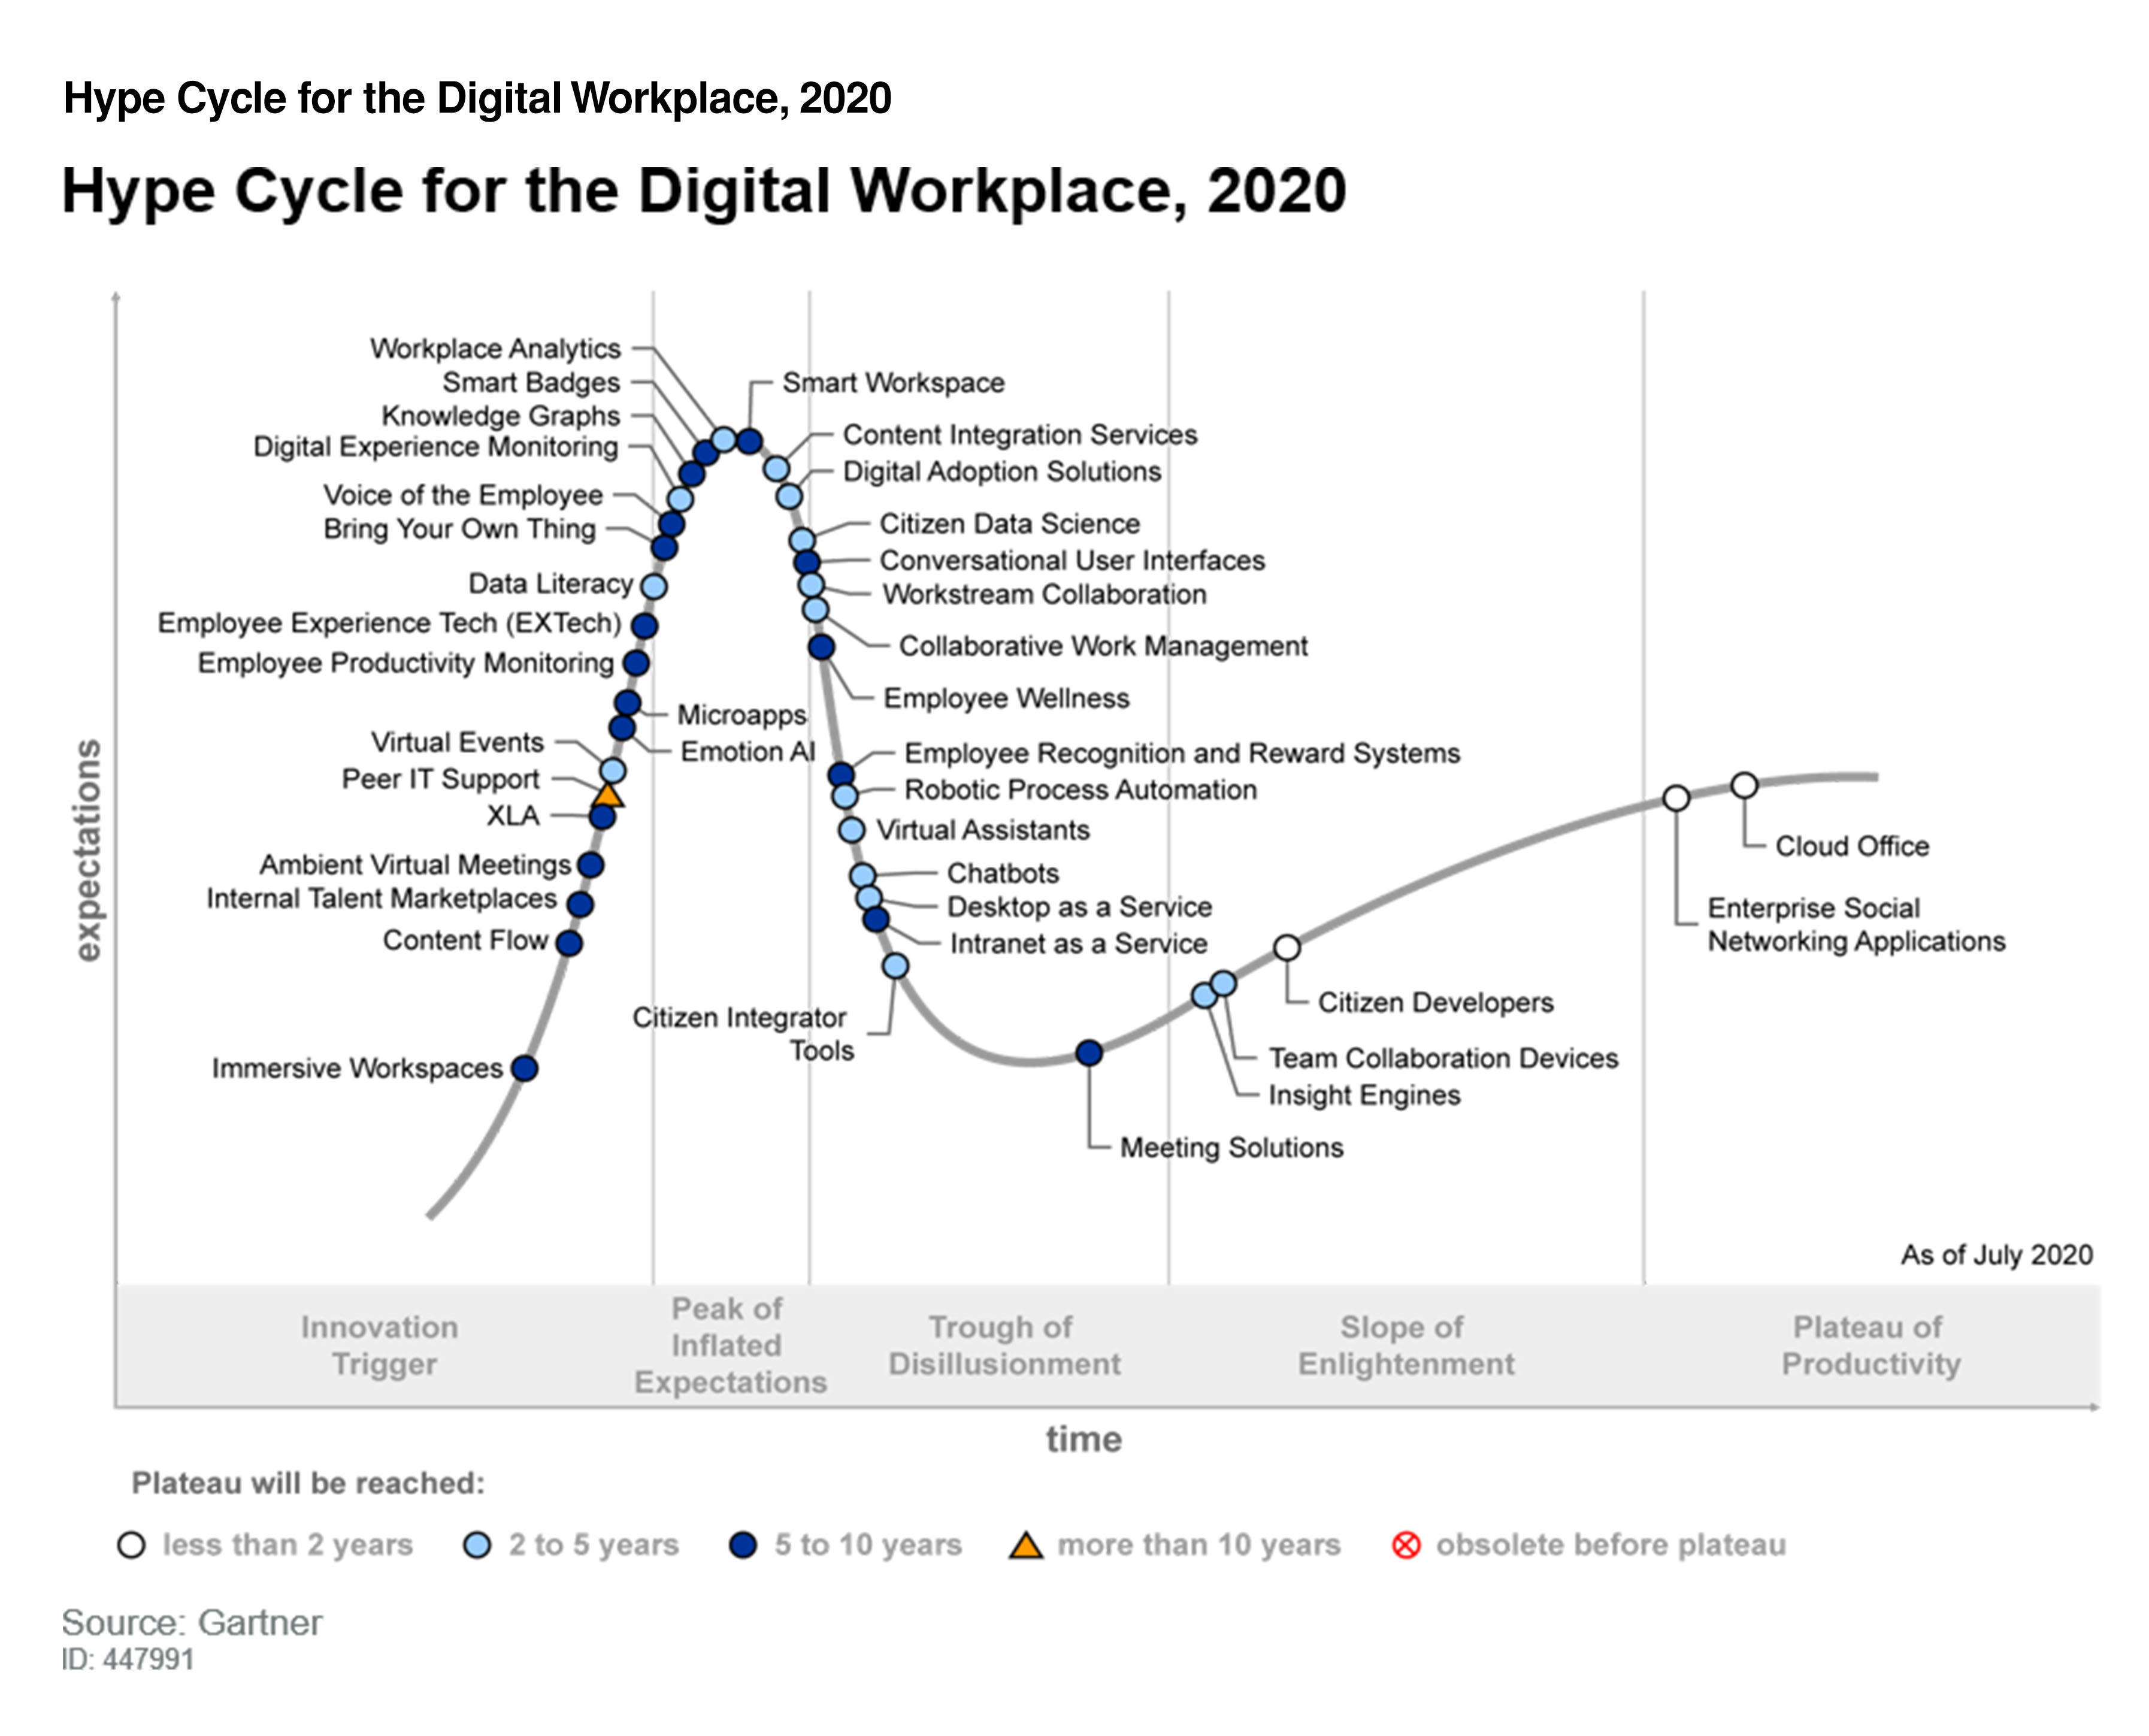 Gartner_Hype_Cycle_Digital_Workplace